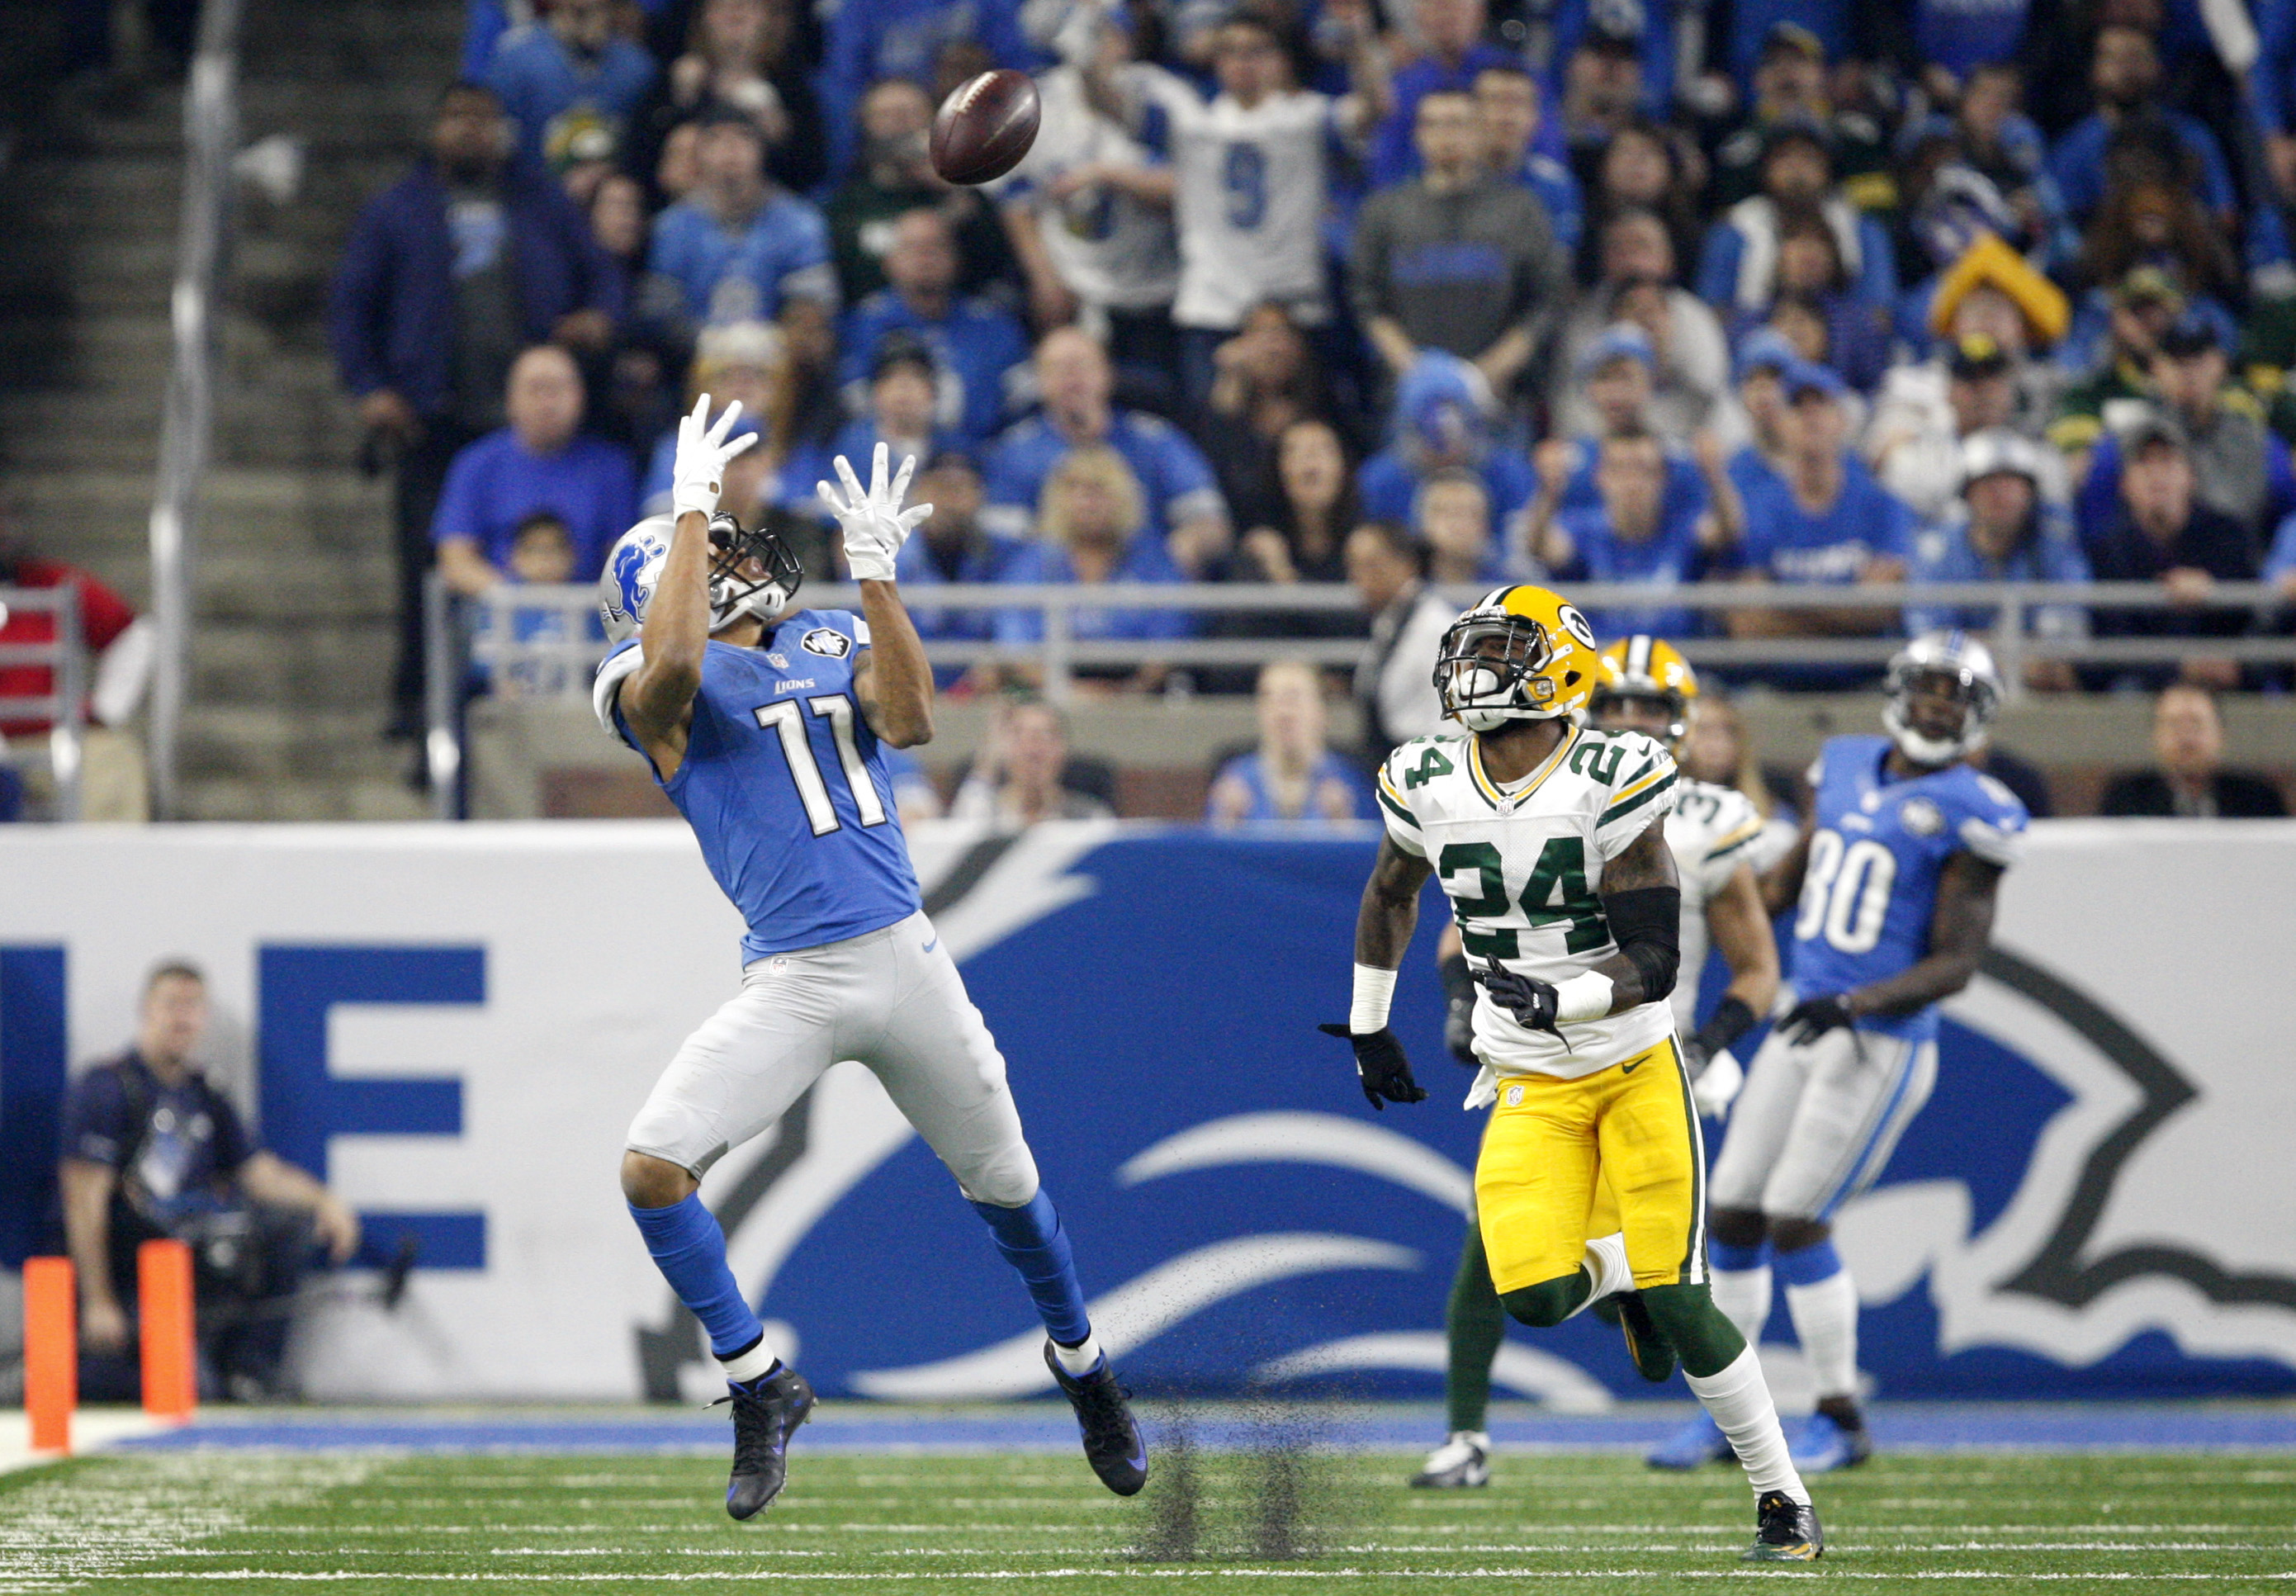 9783853-nfl-green-bay-packers-at-detroit-lions